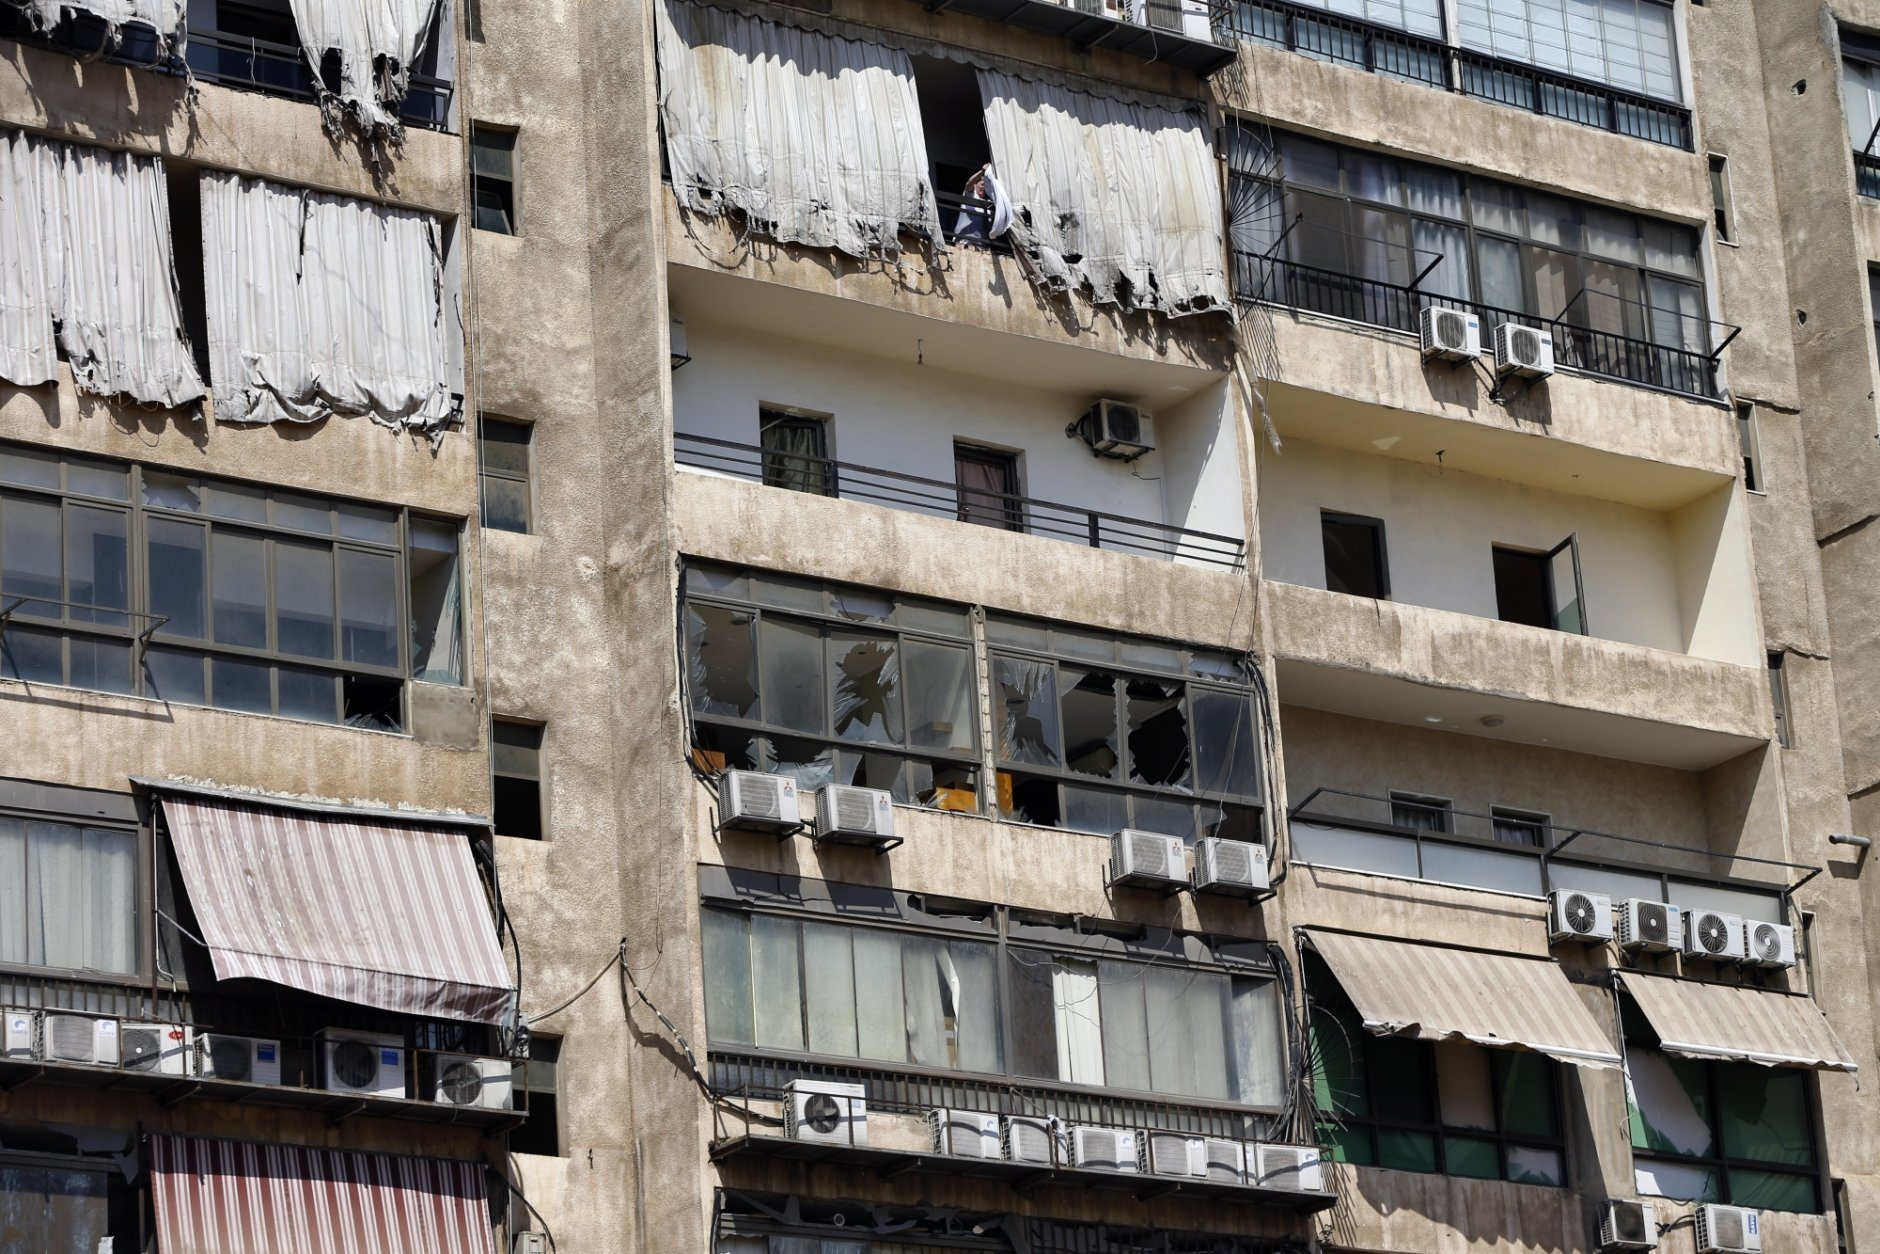 A woman hangs laundry at the 11th-floor building that houses the media office in a stronghold of the Lebanese Hezbollah group, in a southern suburb of Beirut, Lebanon, Sunday, Aug. 25, 2019. Two Israeli drones crashed in a Hezbollah stronghold in the Lebanese capital overnight without the militants firing on them, a spokesman for the group said Sunday, saying the first fell on the roof of a building housing Hezbollah's media office while the second landed in a plot behind it. (AP Photo/Bilal Hussein)